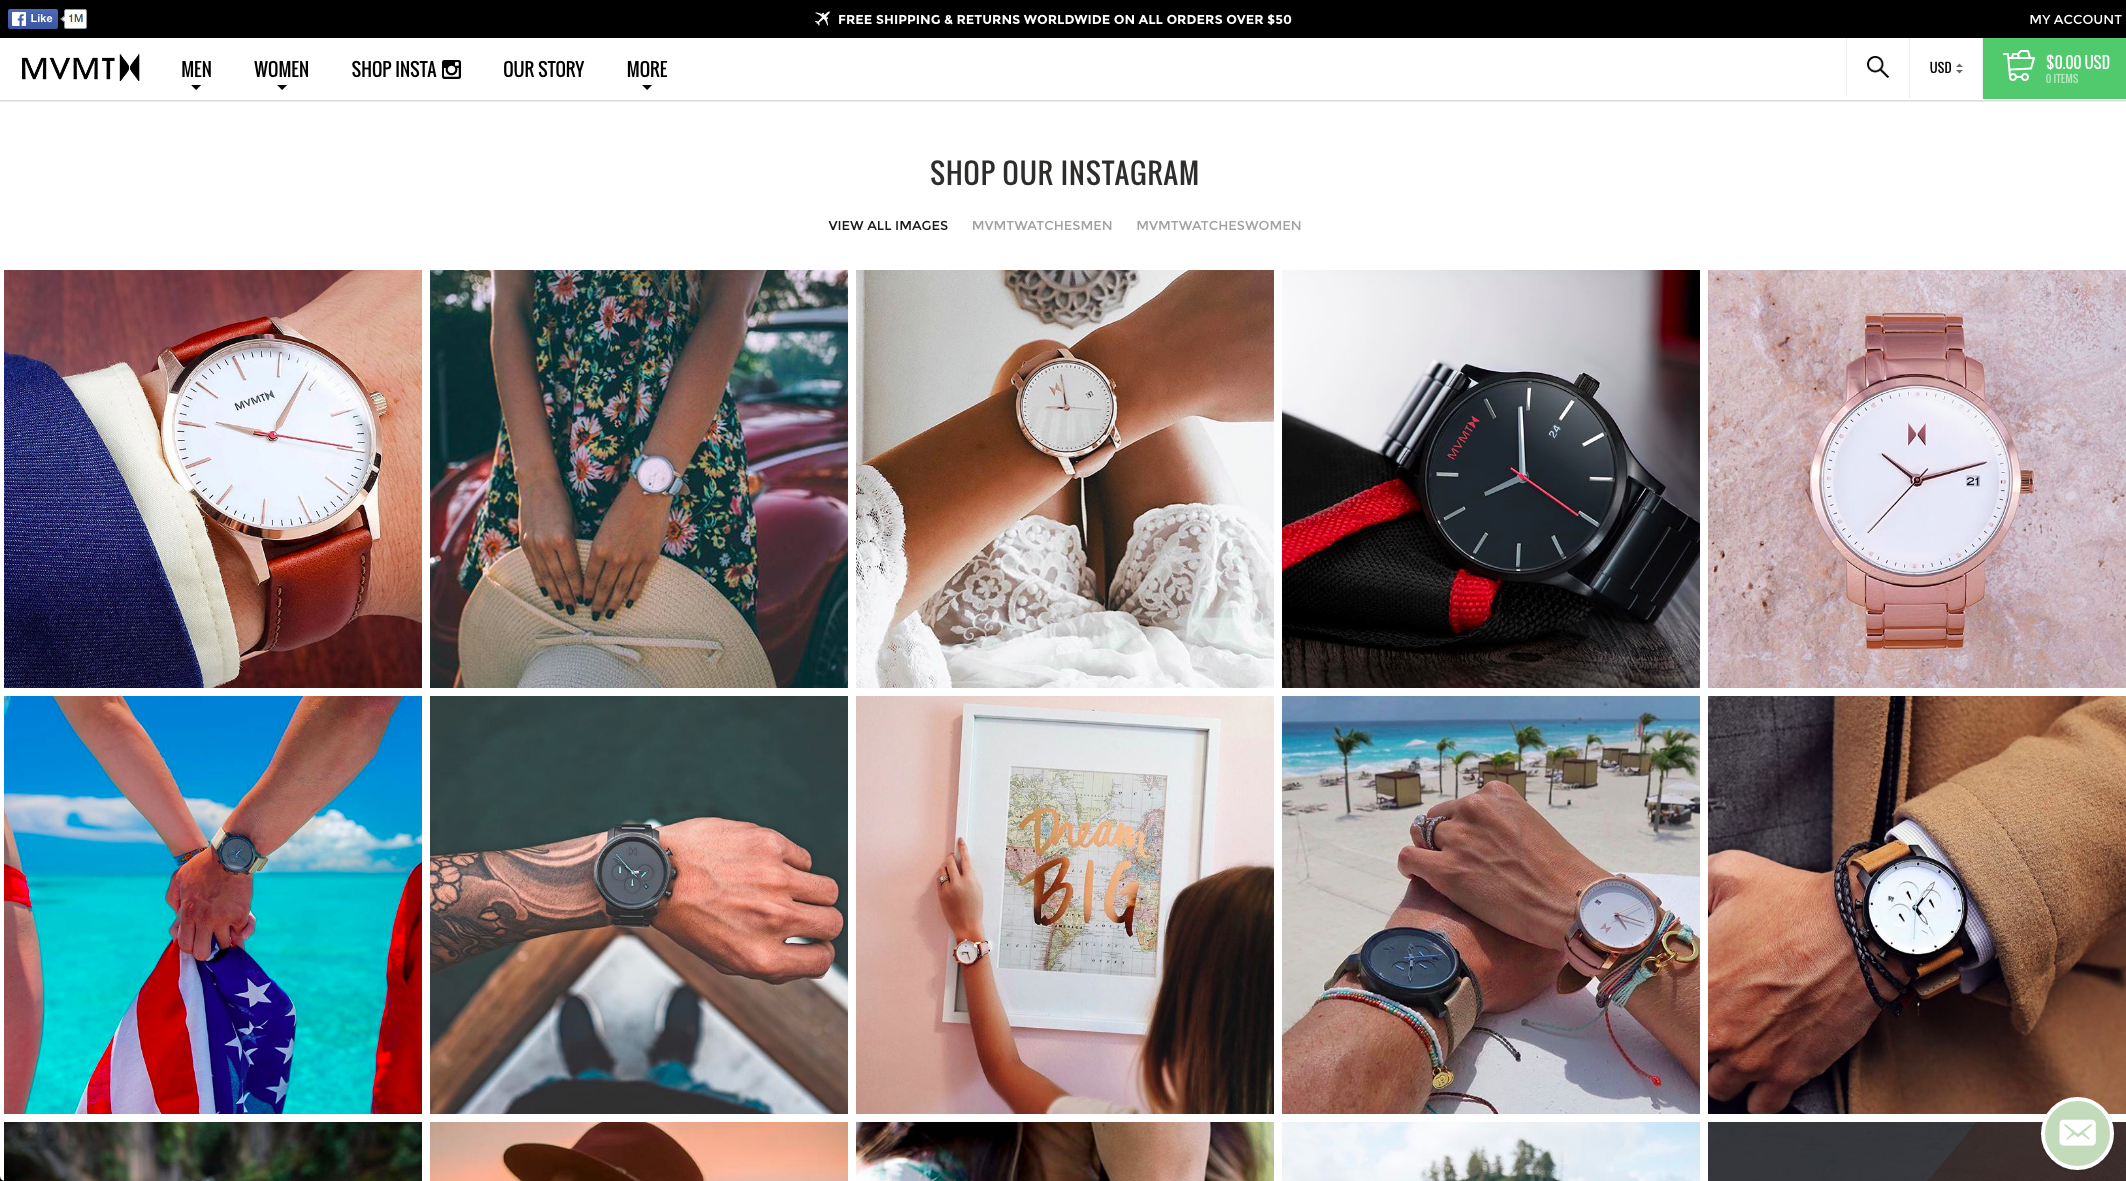 Image of Instagram feed with shopping feature